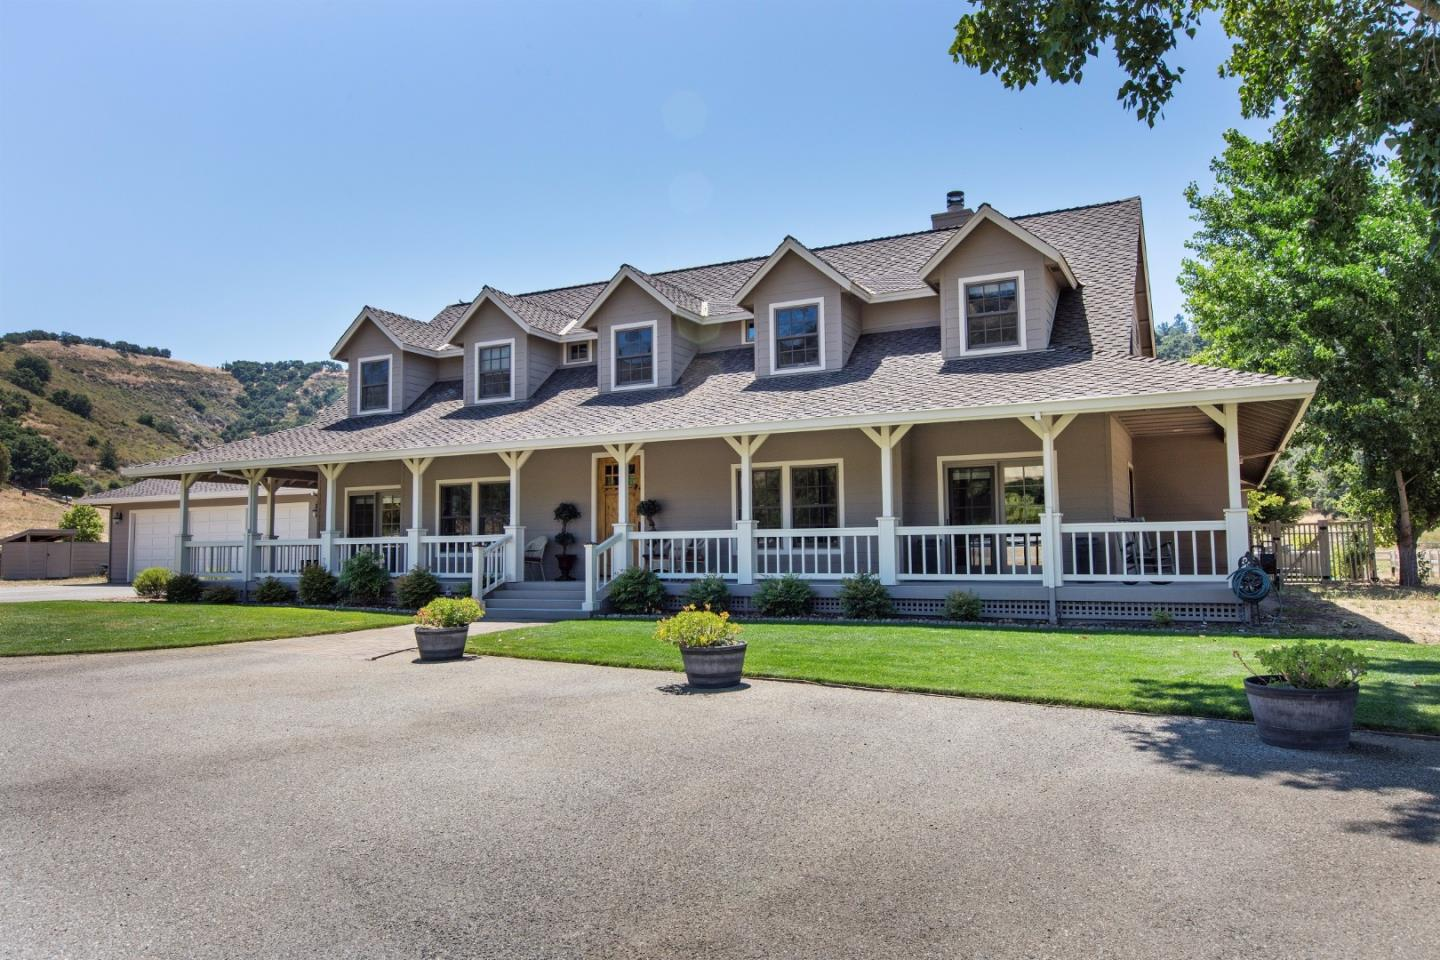 Single Family Home for Sale at 482 Corral De Tierra Road Salinas, California 93908 United States